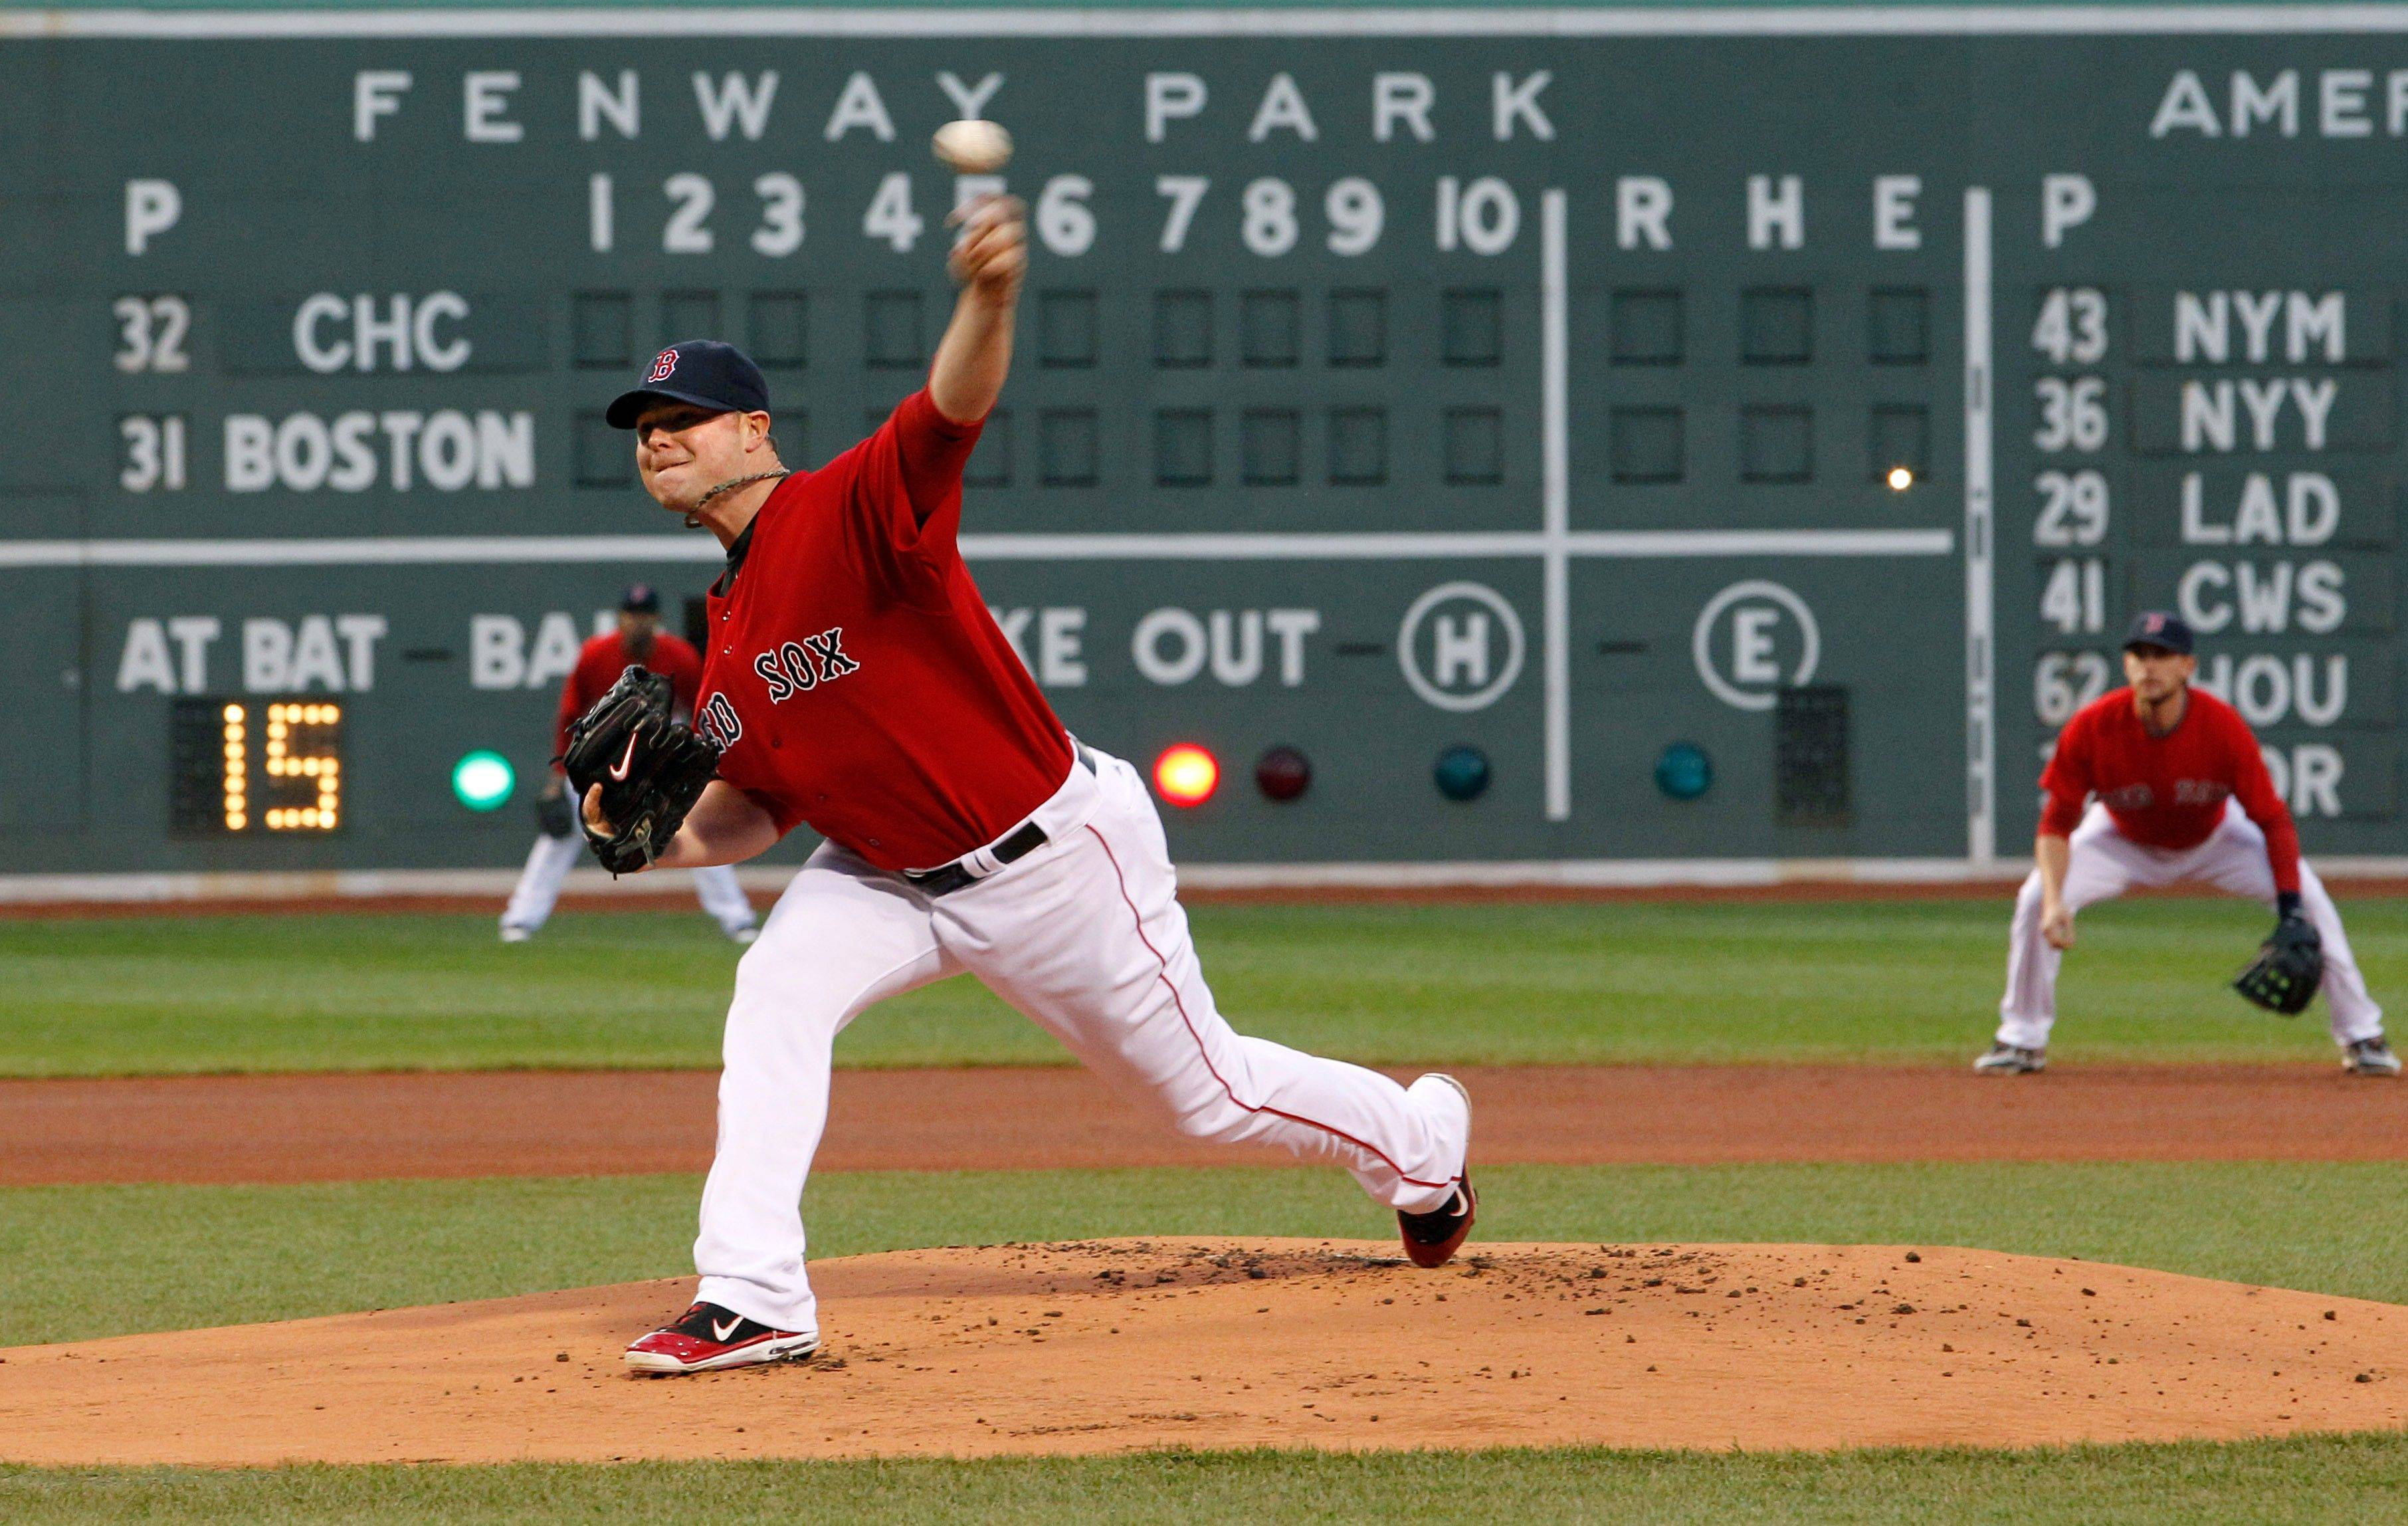 Boston Red Sox starting pitcher Jon Lester (31) delivers to the Chicago Cubs as shortstop Jed Lowrie watches in the first inning of an interleague baseball game at Fenway Park in Boston Friday, May 20, 2011.